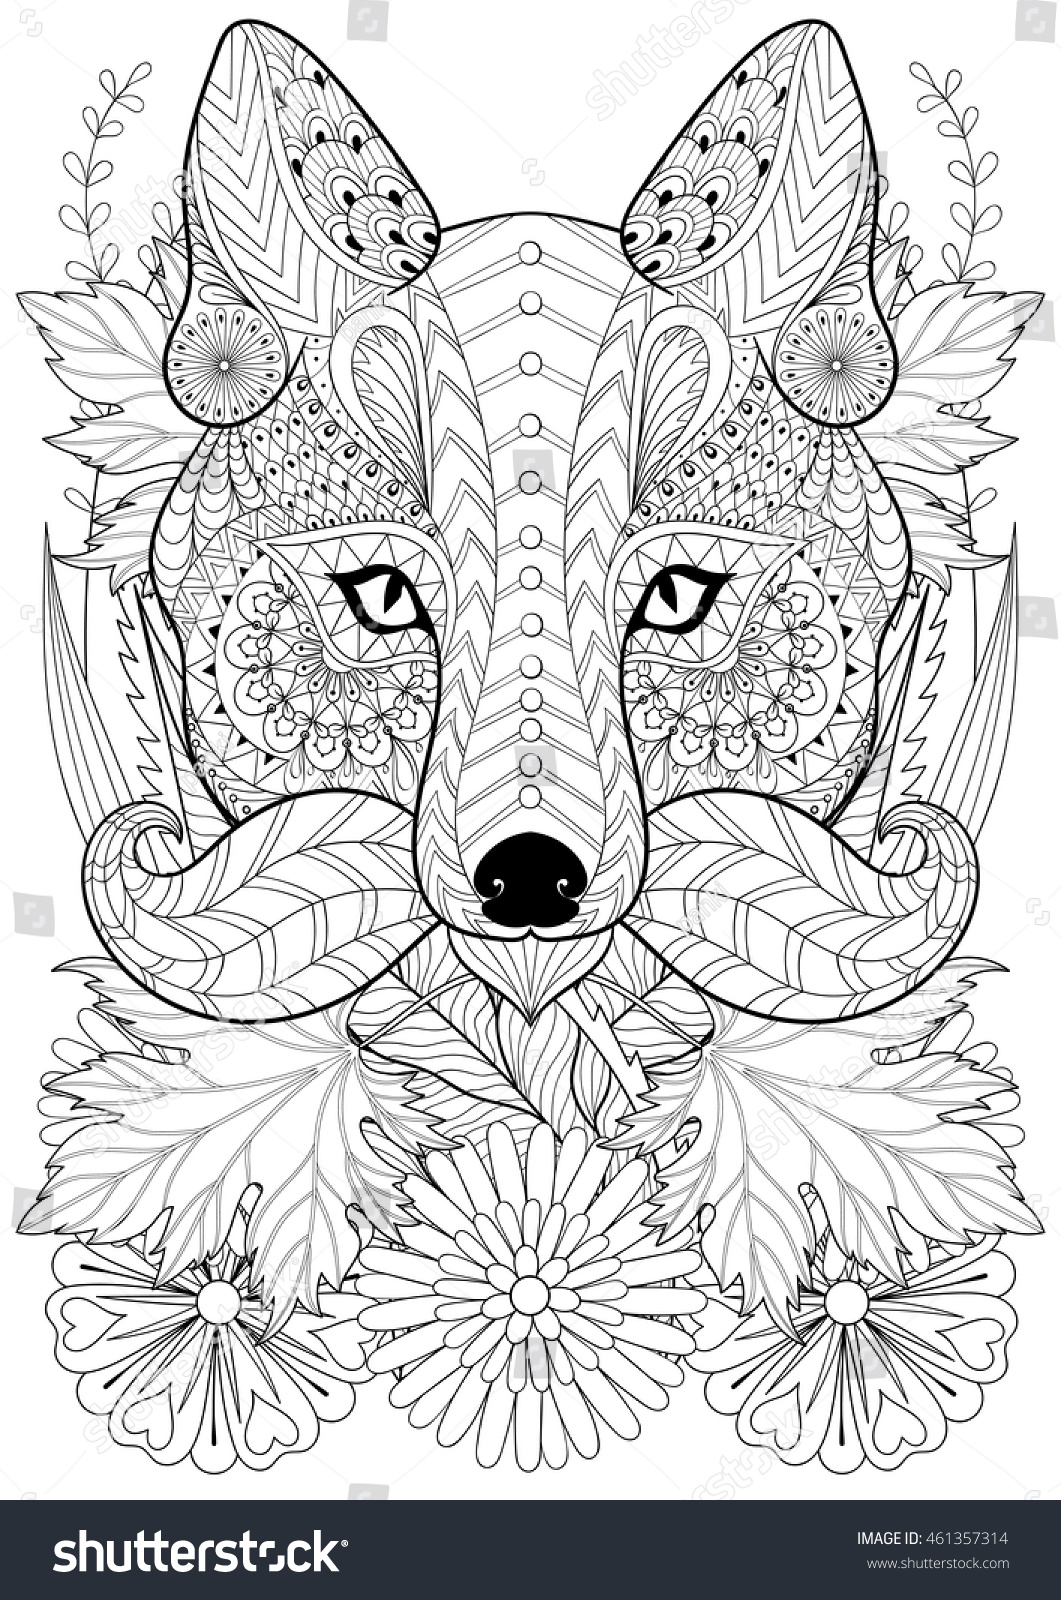 zentangle stylized fox with moustache on flowers hand drawn ethnic animal for adult coloring pages - Art Therapy Coloring Pages Animals